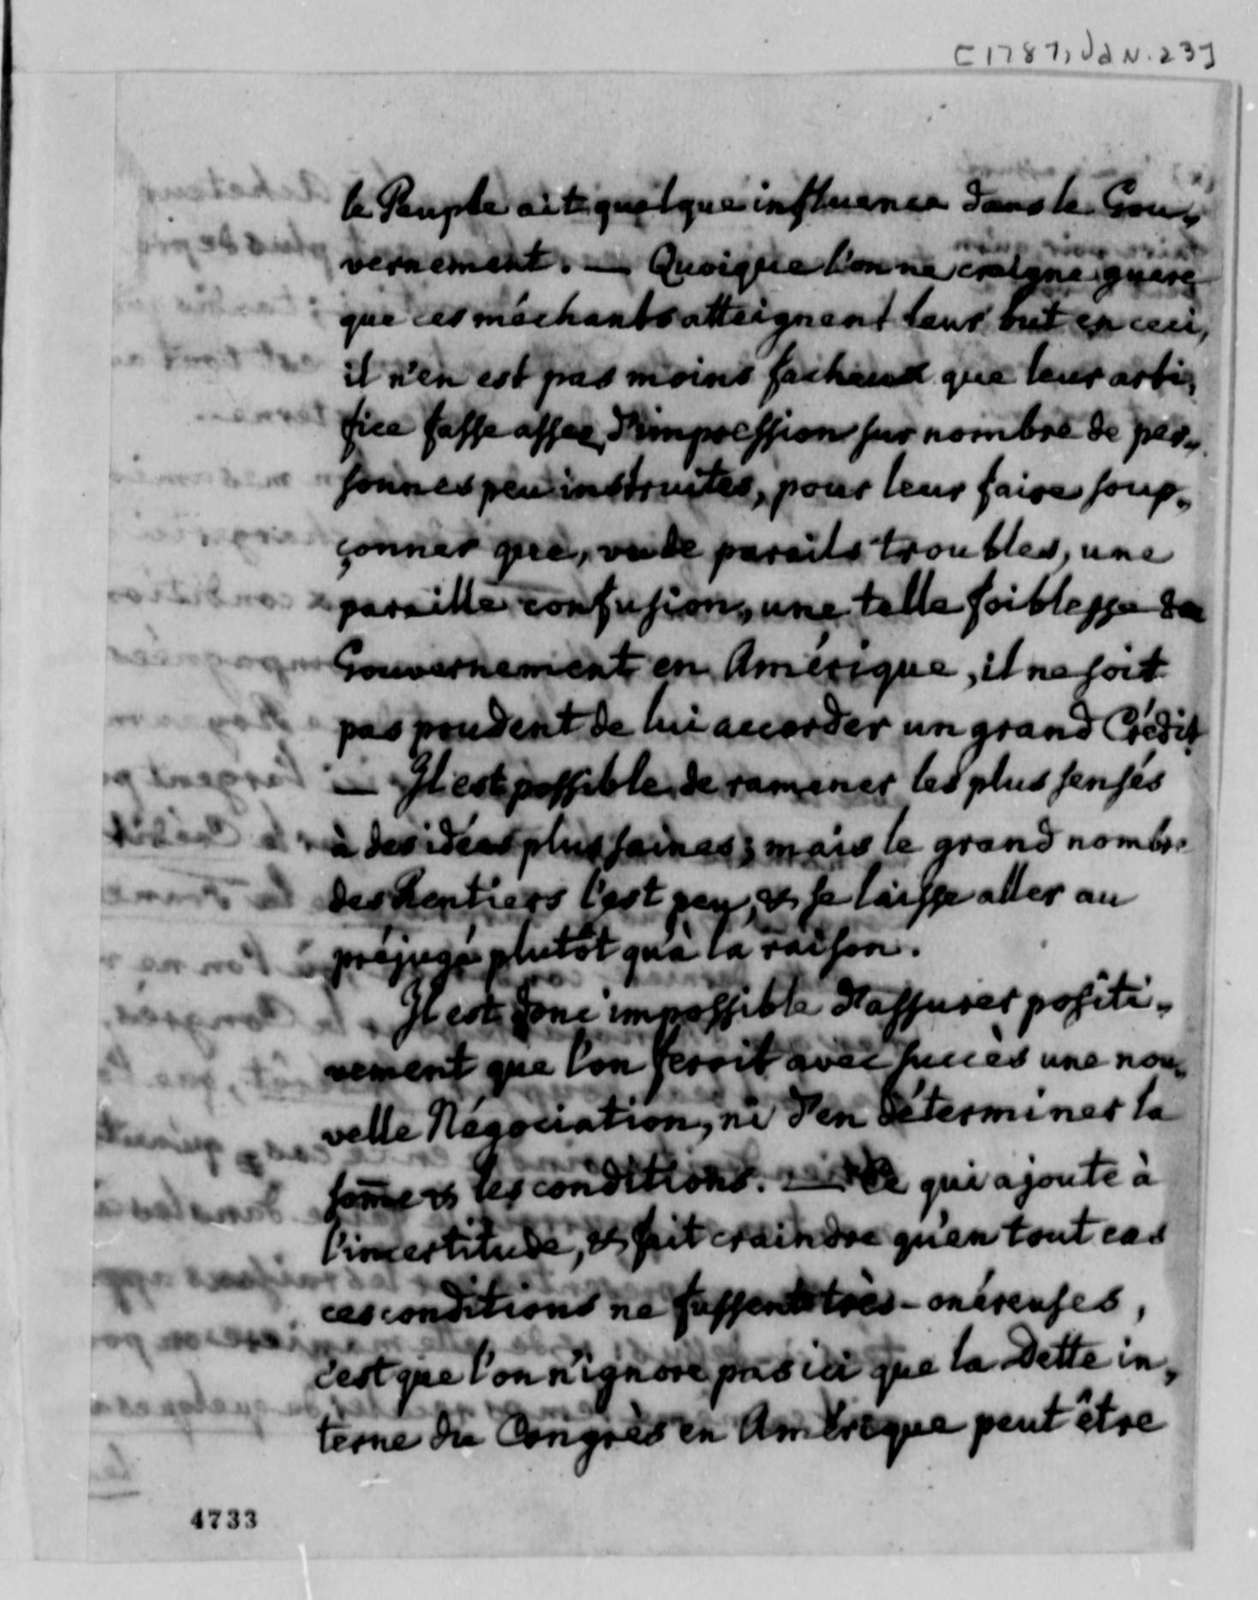 Charles William Frederic Dumas to Thomas Jefferson, January 23, 1787, in French